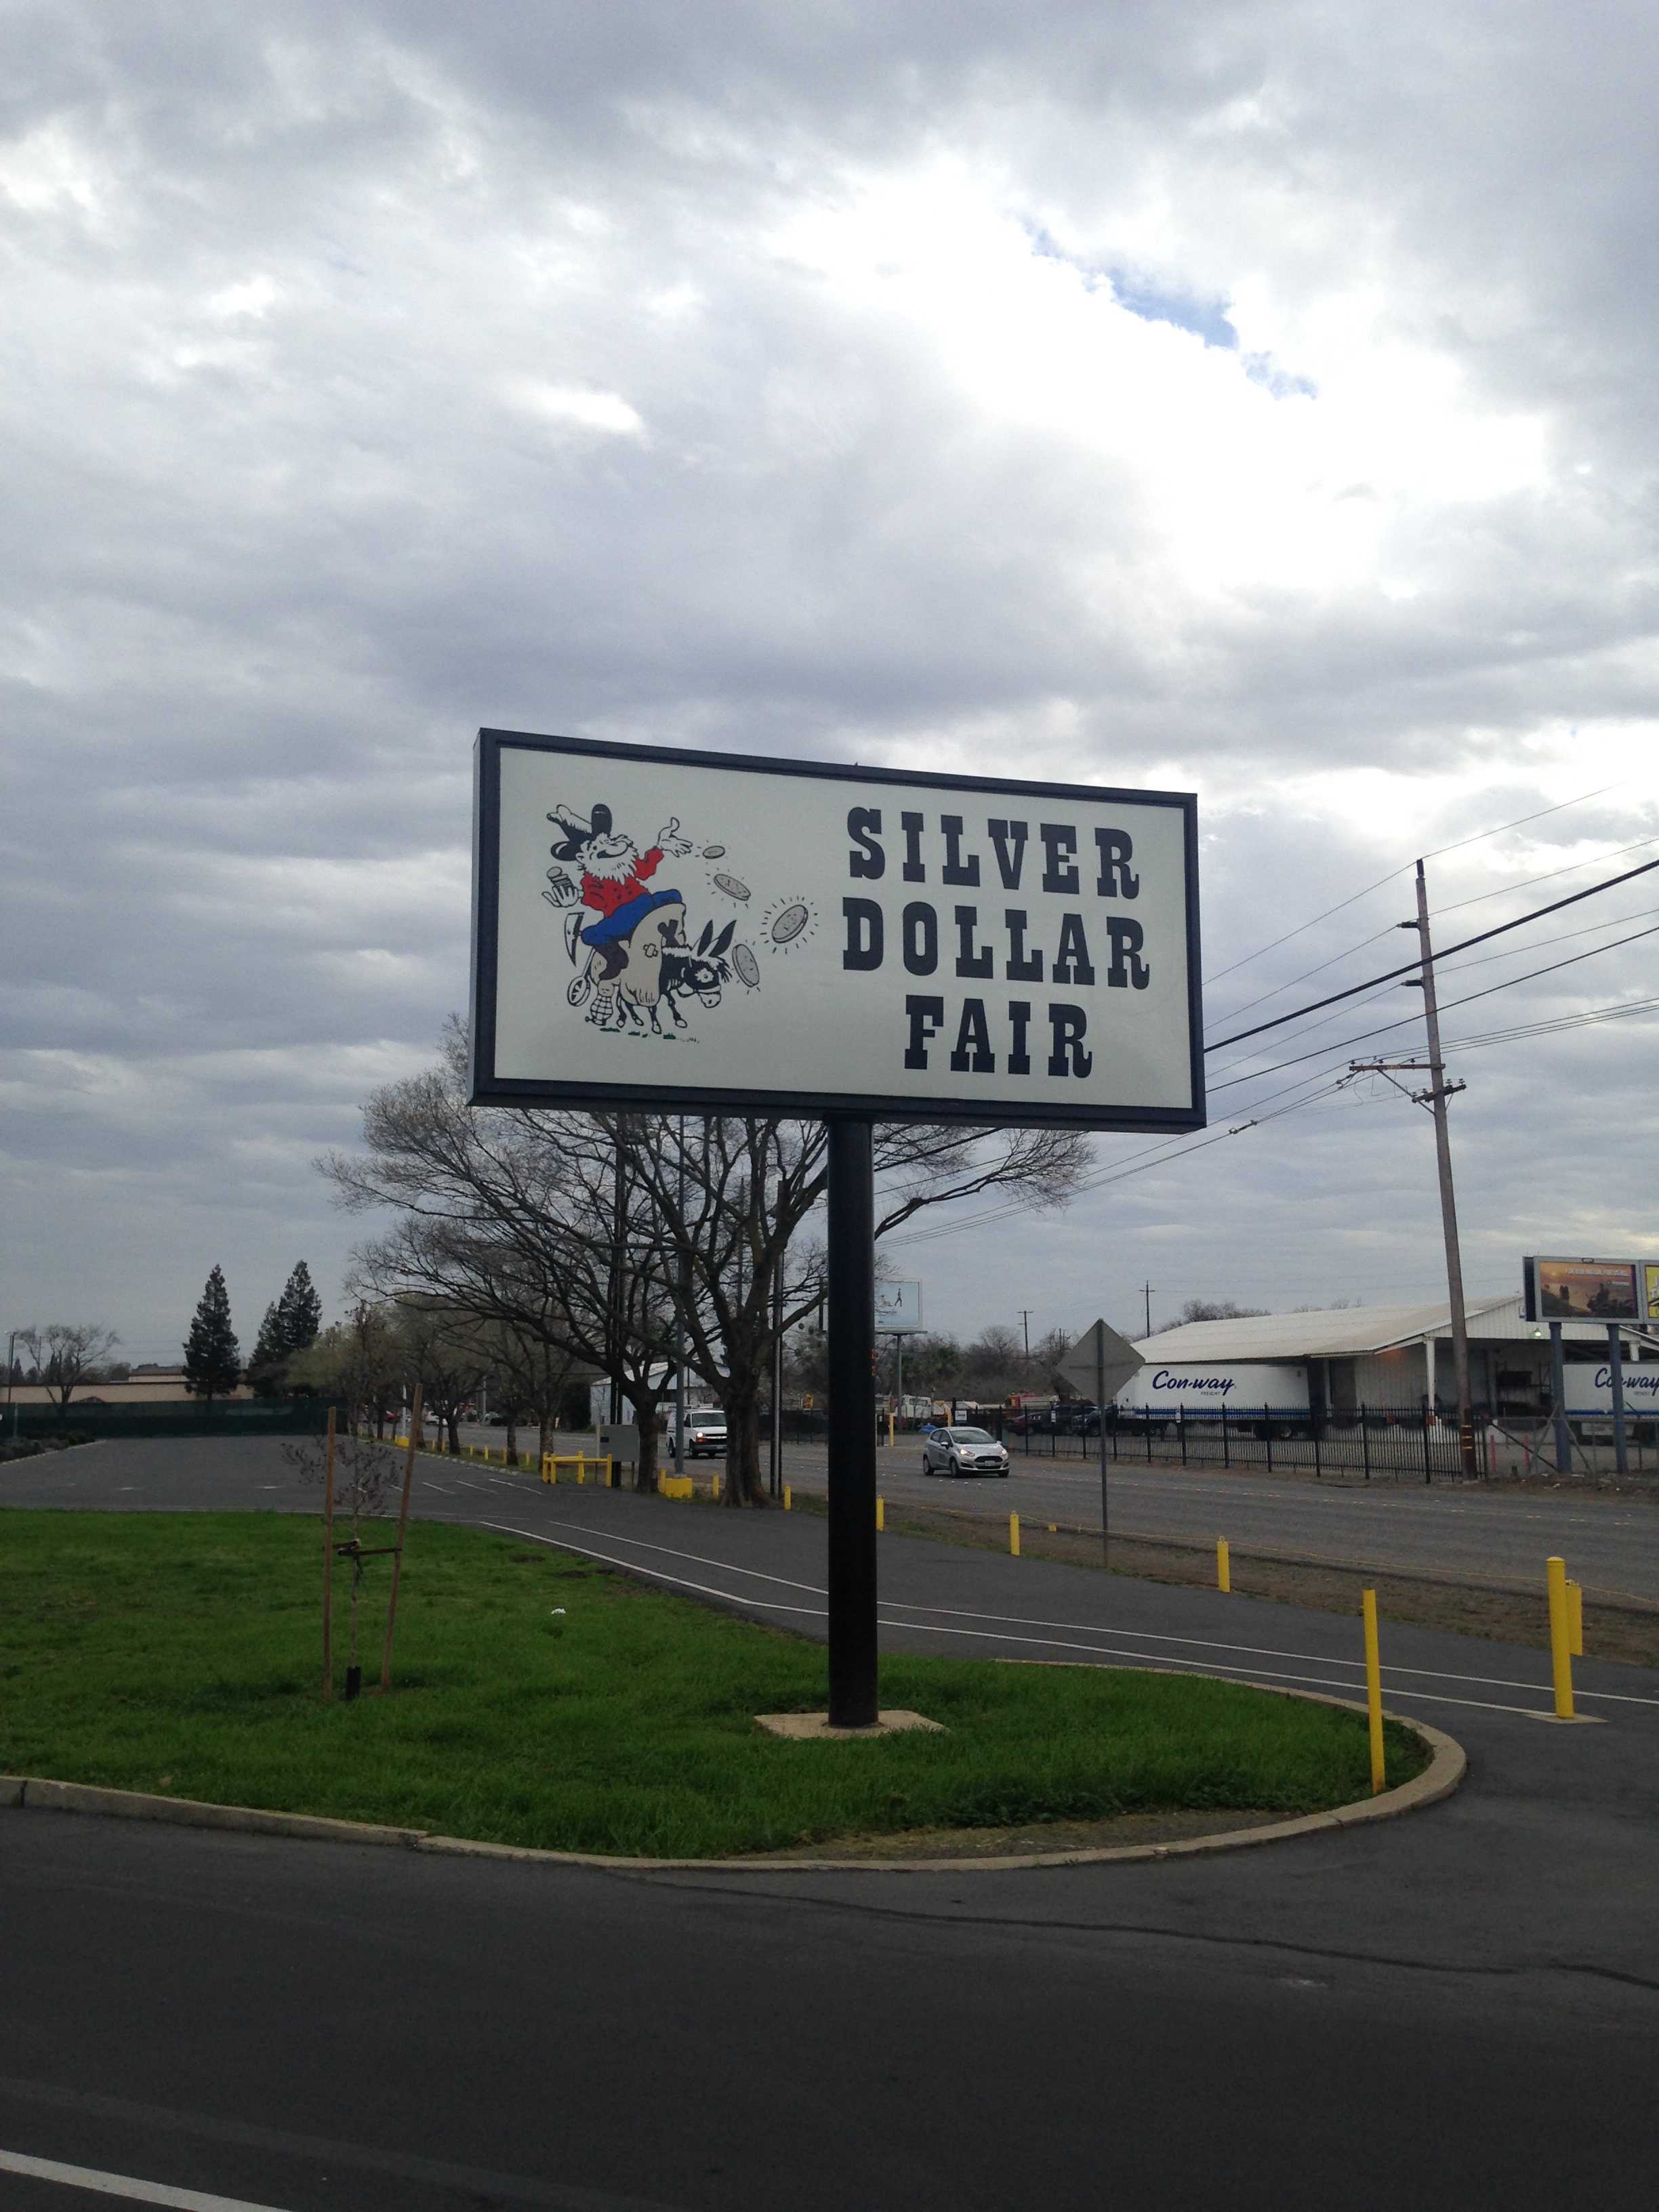 Project Homeless  is returning to the Silver Dollar Fair to help the less fortunate out Photo credit: Amelia Storm